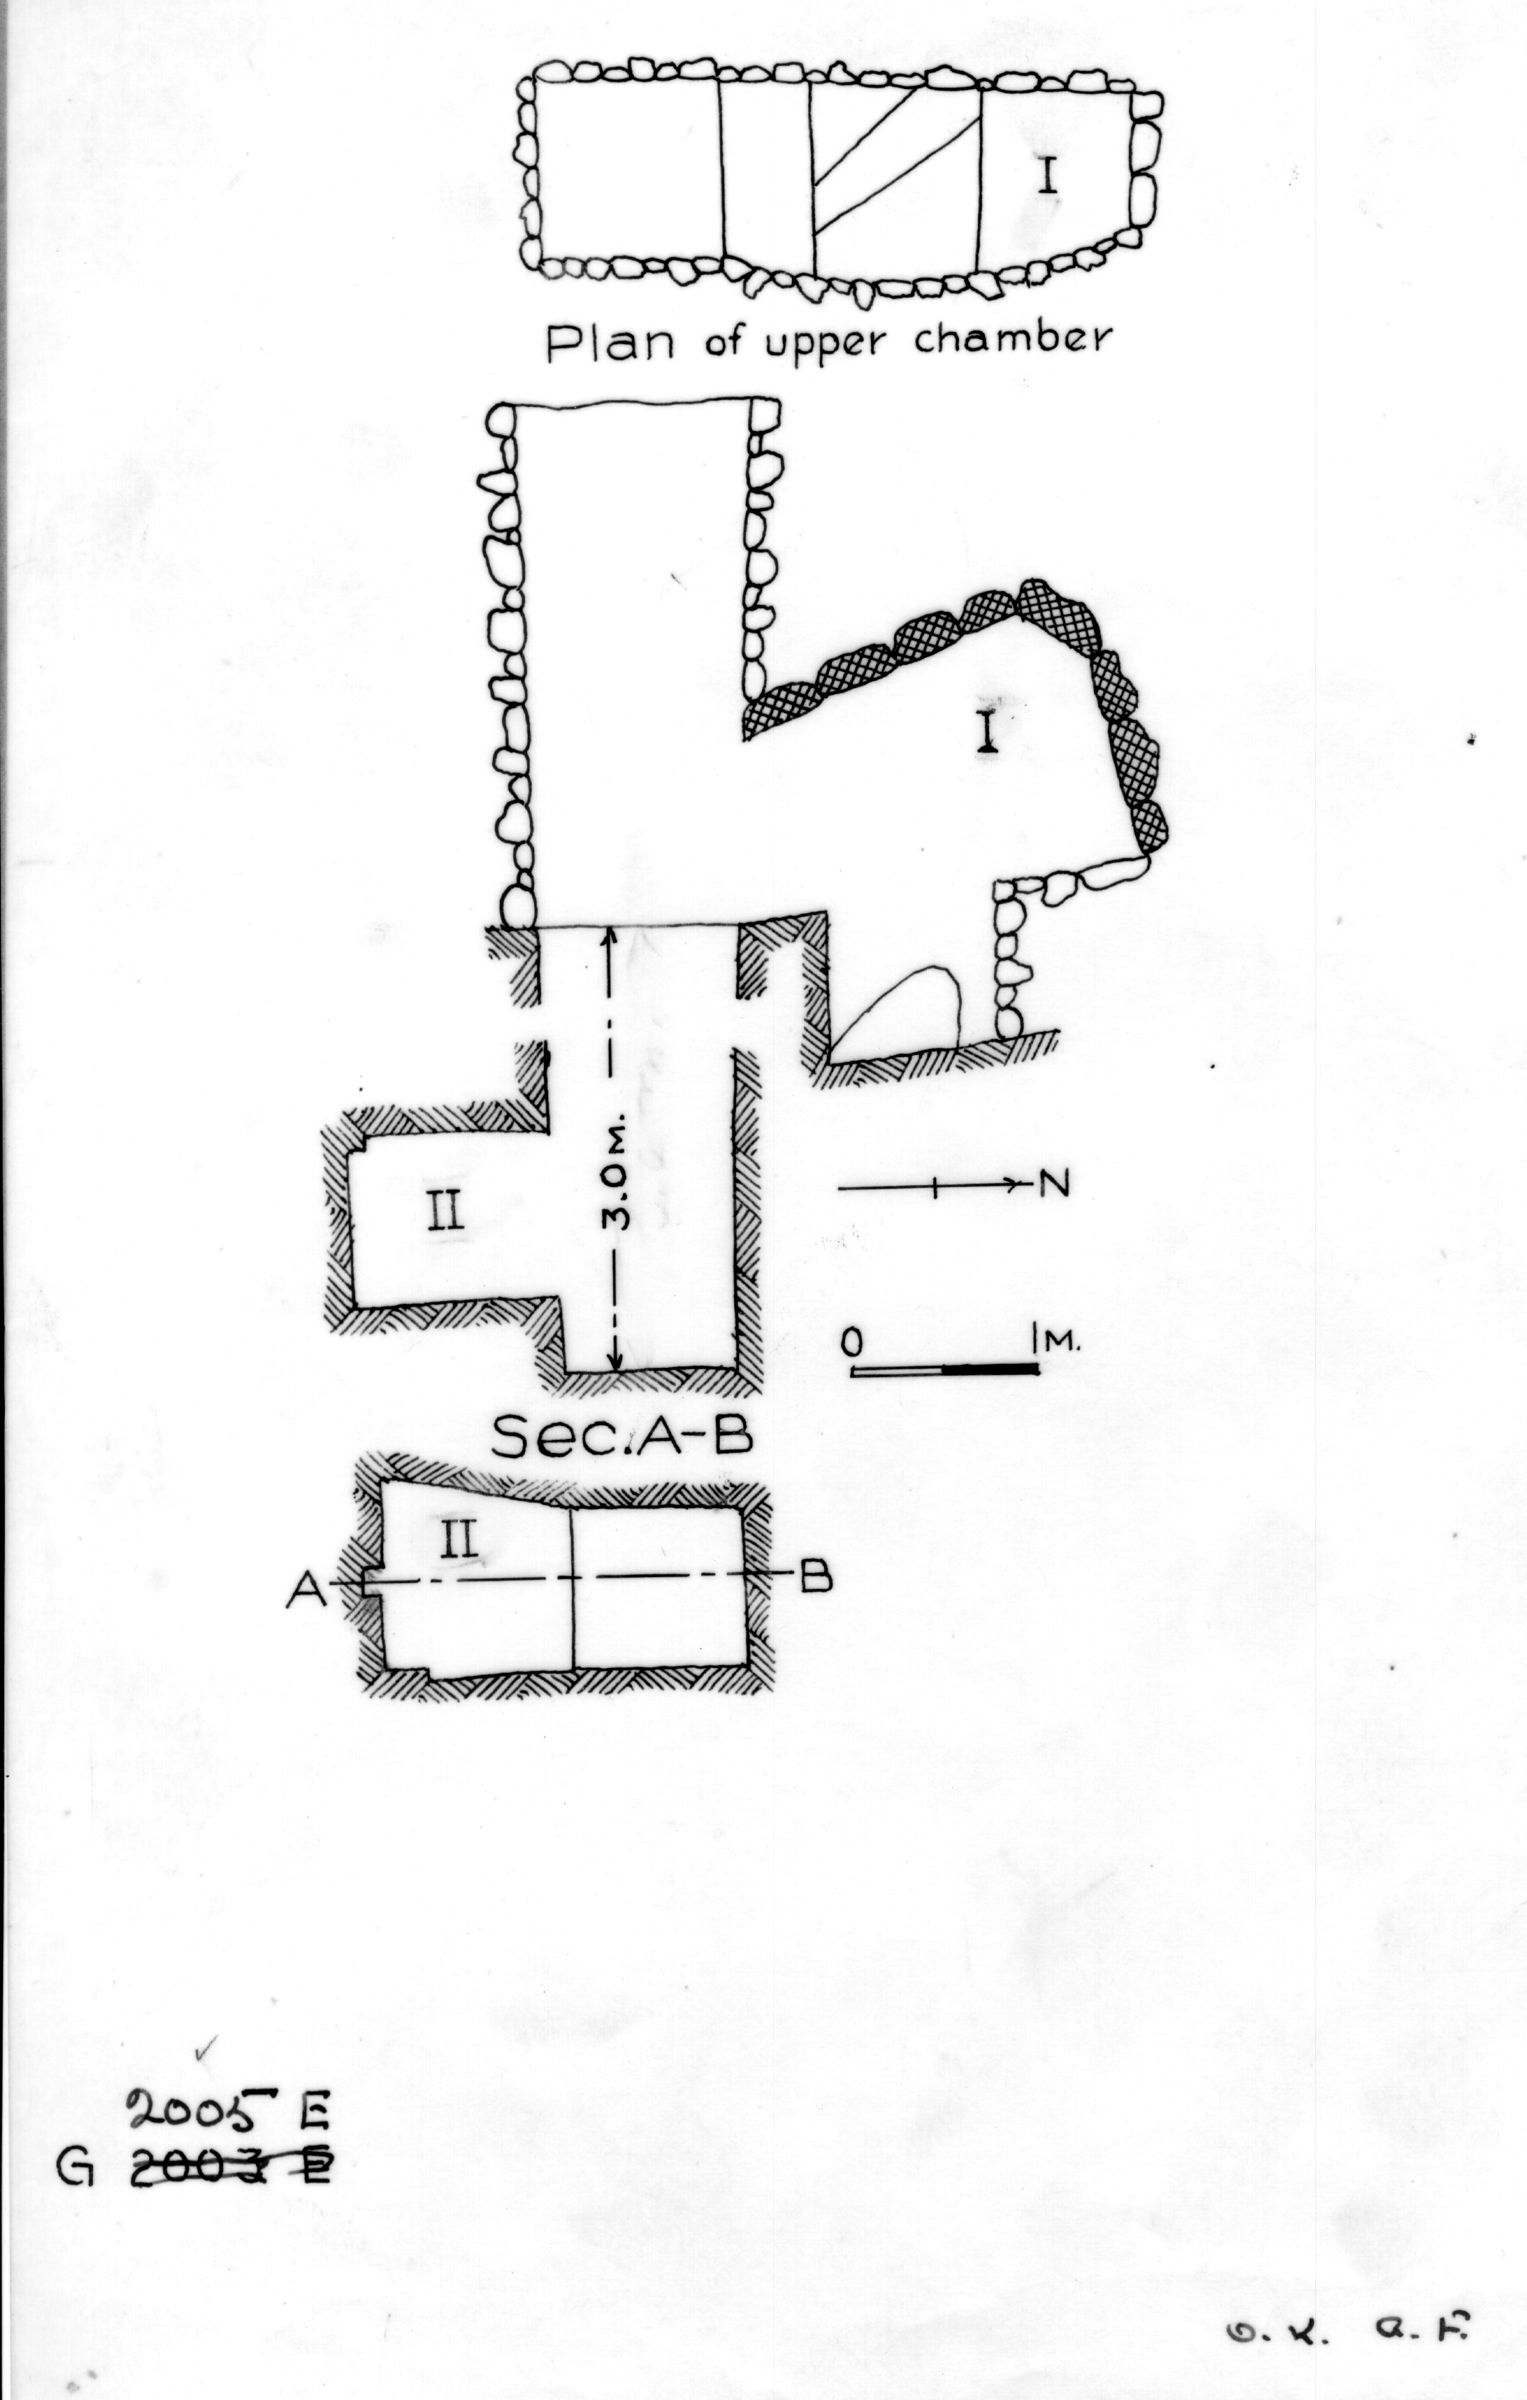 Maps and plans: G 2005, Shaft E